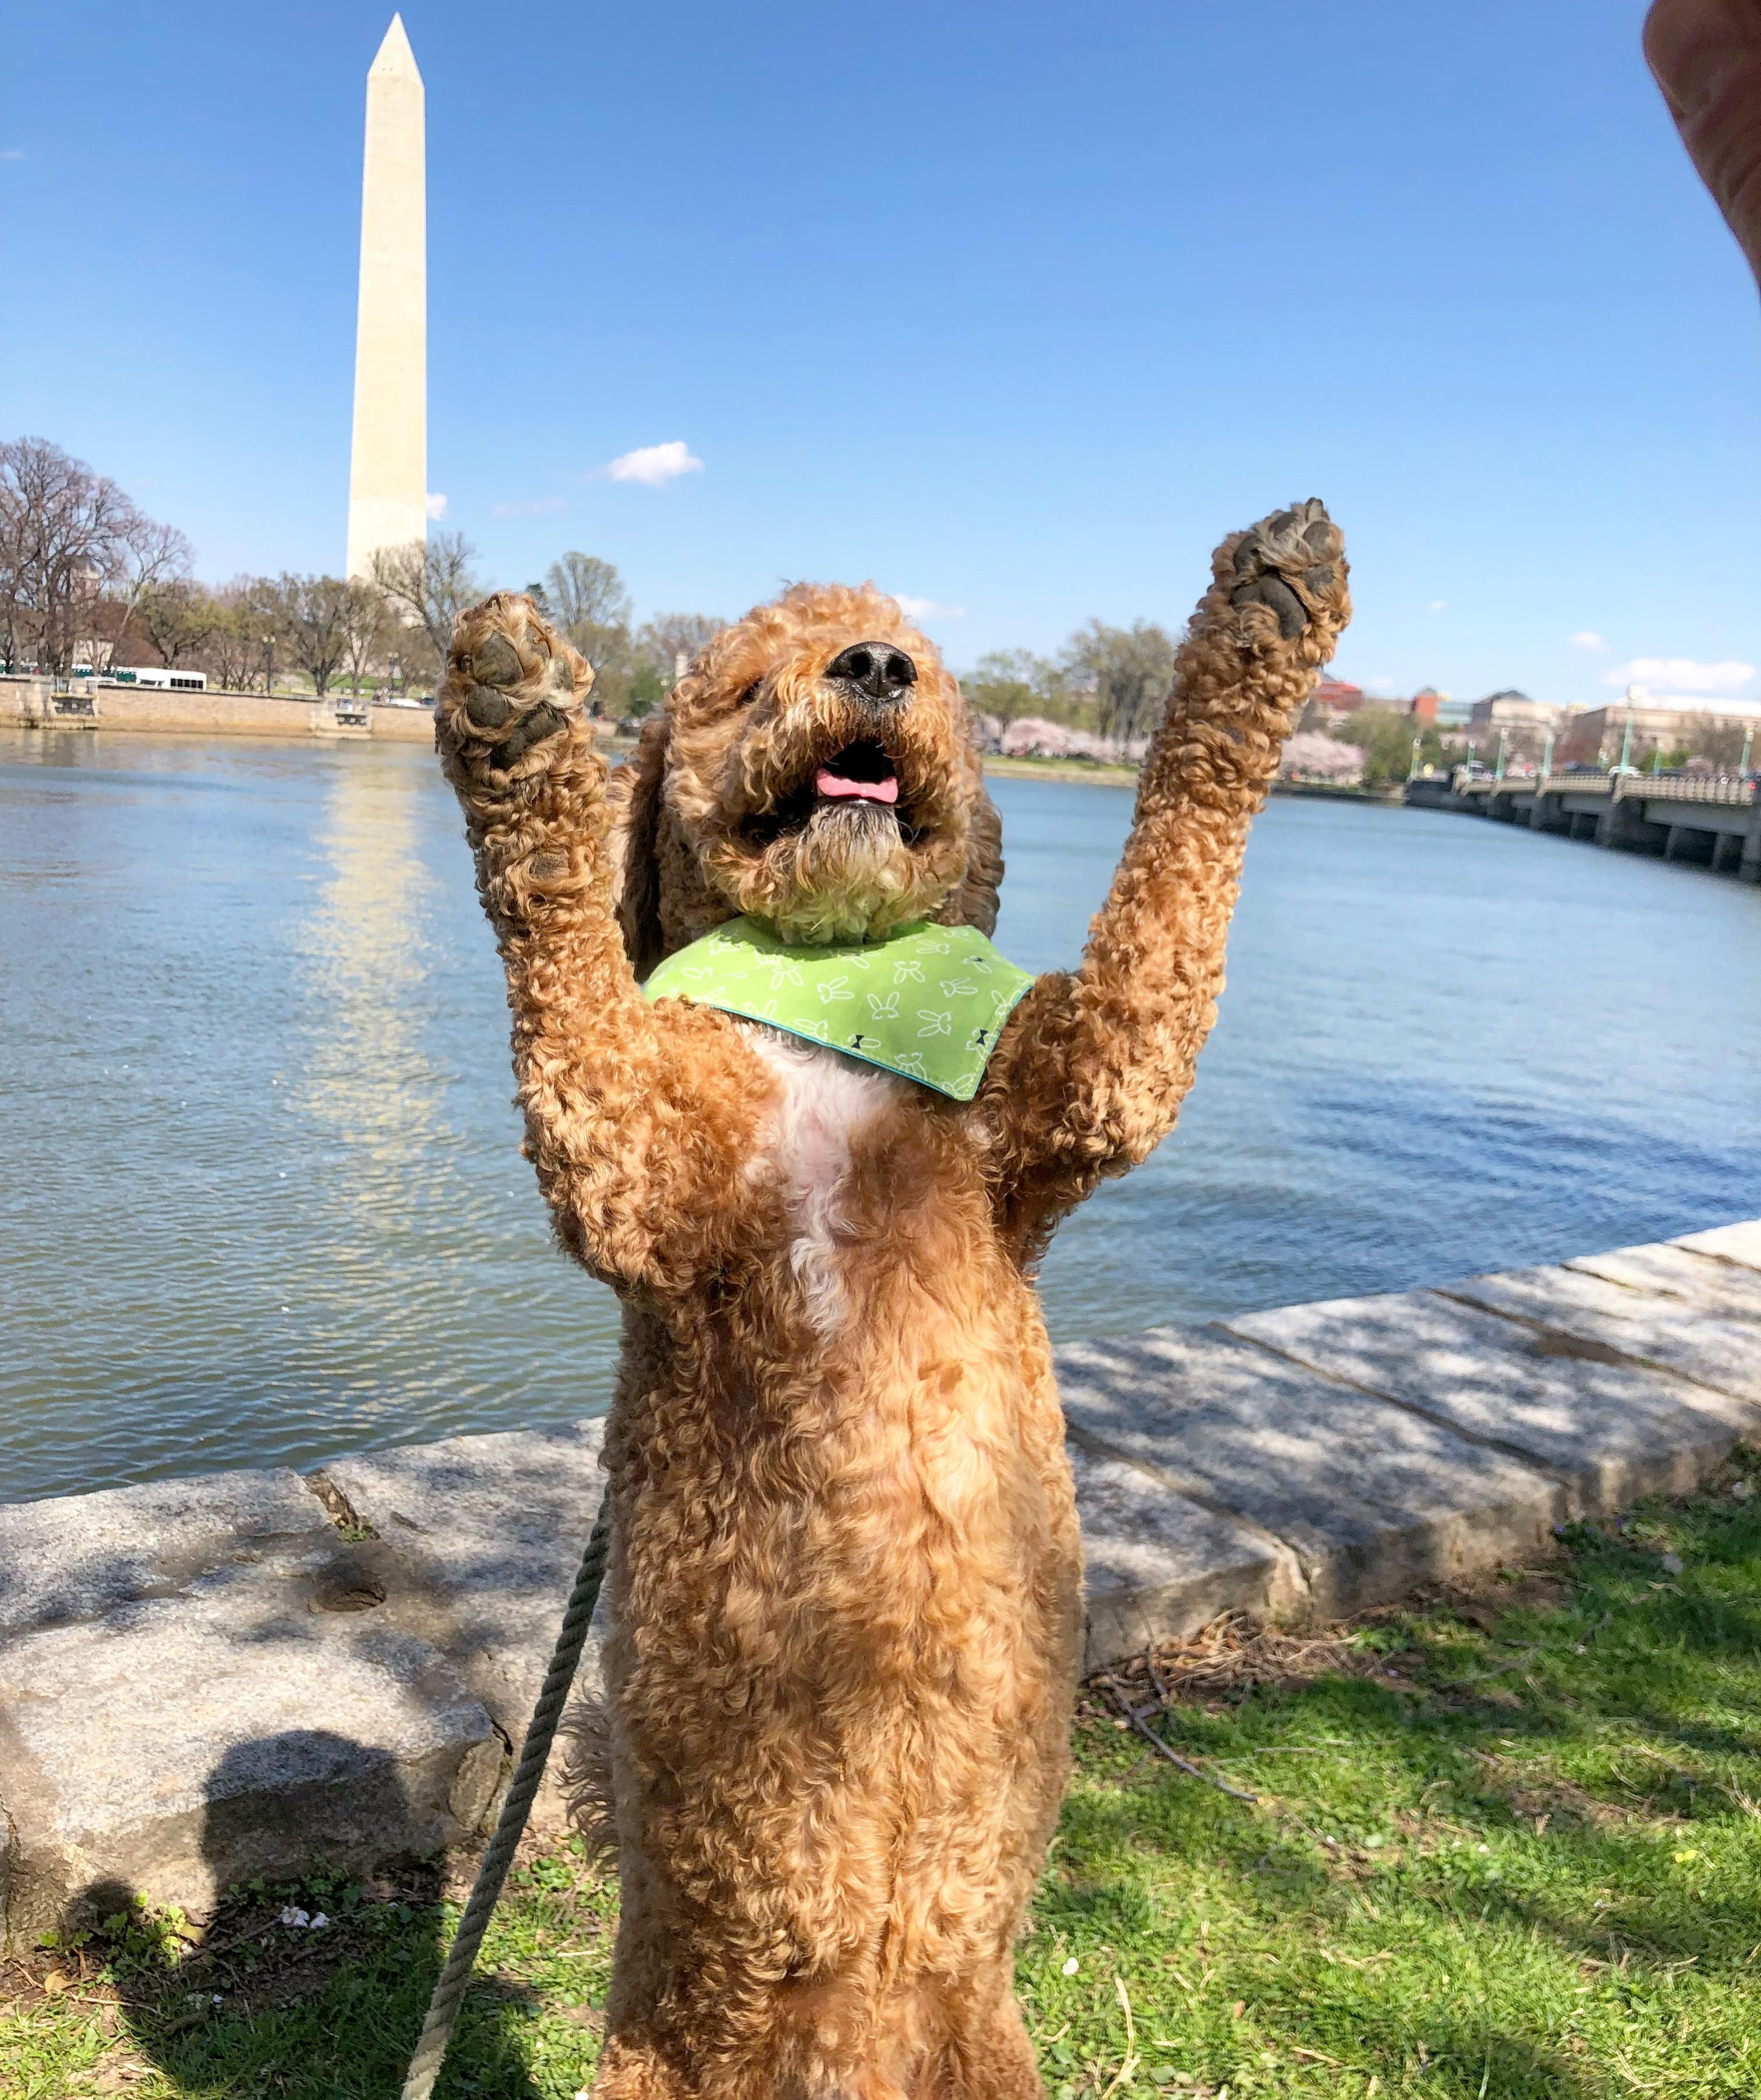 In honor of National Pet Day (which is basically like Christmas around here!) we checked in on a few of our favorite Instagram stars to see what they've been up to lately, and we noticed many of them had paid a visit to D.C.'s beloved blossoms. So for this week's special RUFFined Spotlight, we give you some adorable four-legged admirers of the cherry blossoms! (Image: via IG user @liamfitzdoodle /{ }instagram.com/liamfitzdoodle/){ }